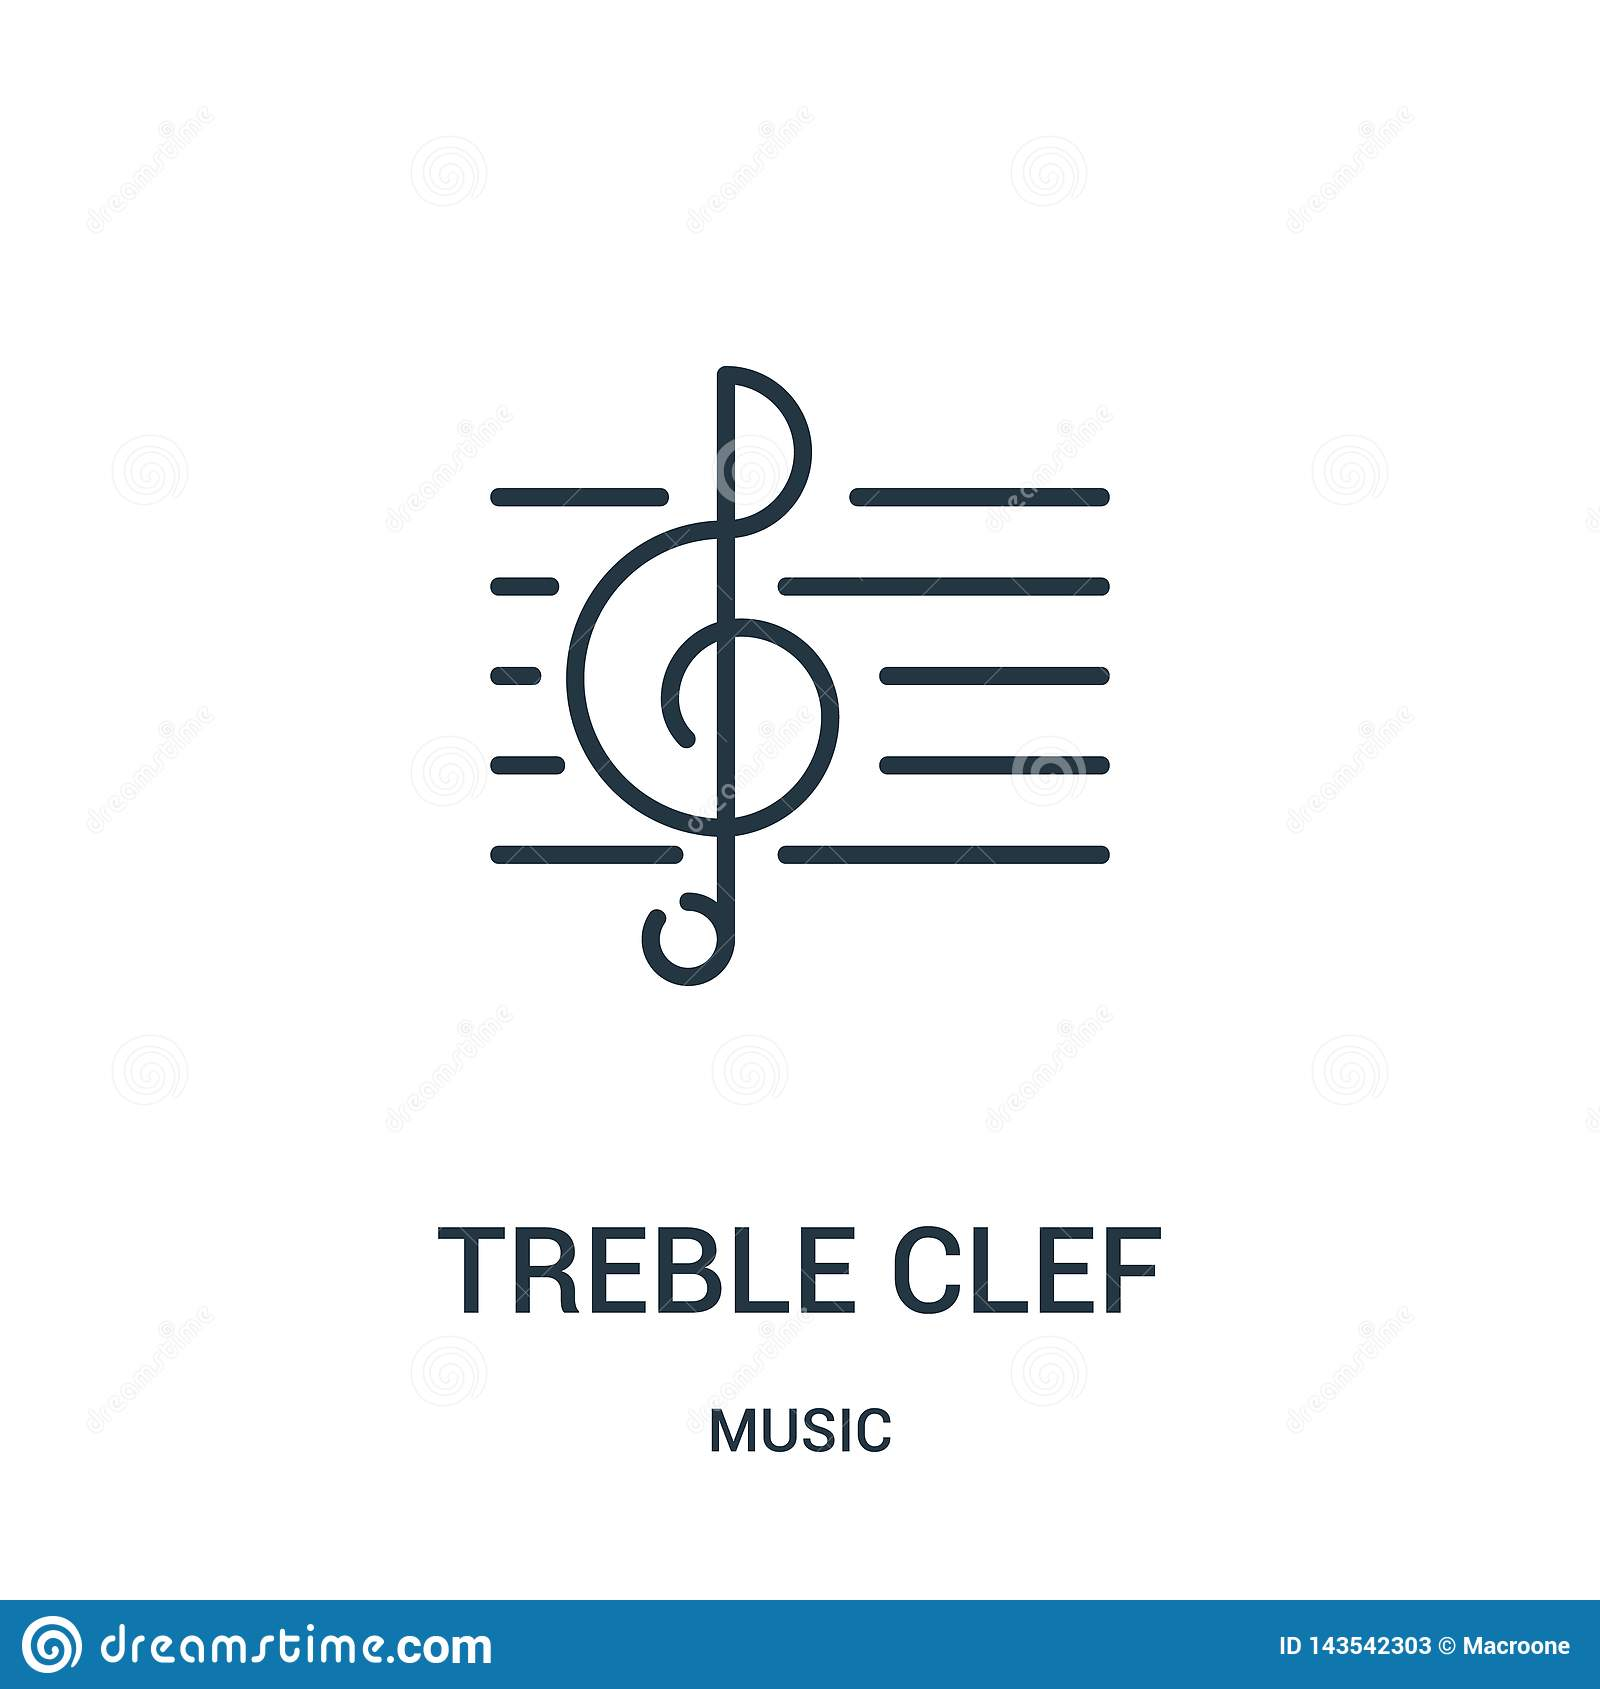 treble clef icon vector from music collection. Thin line treble clef outline icon vector illustration